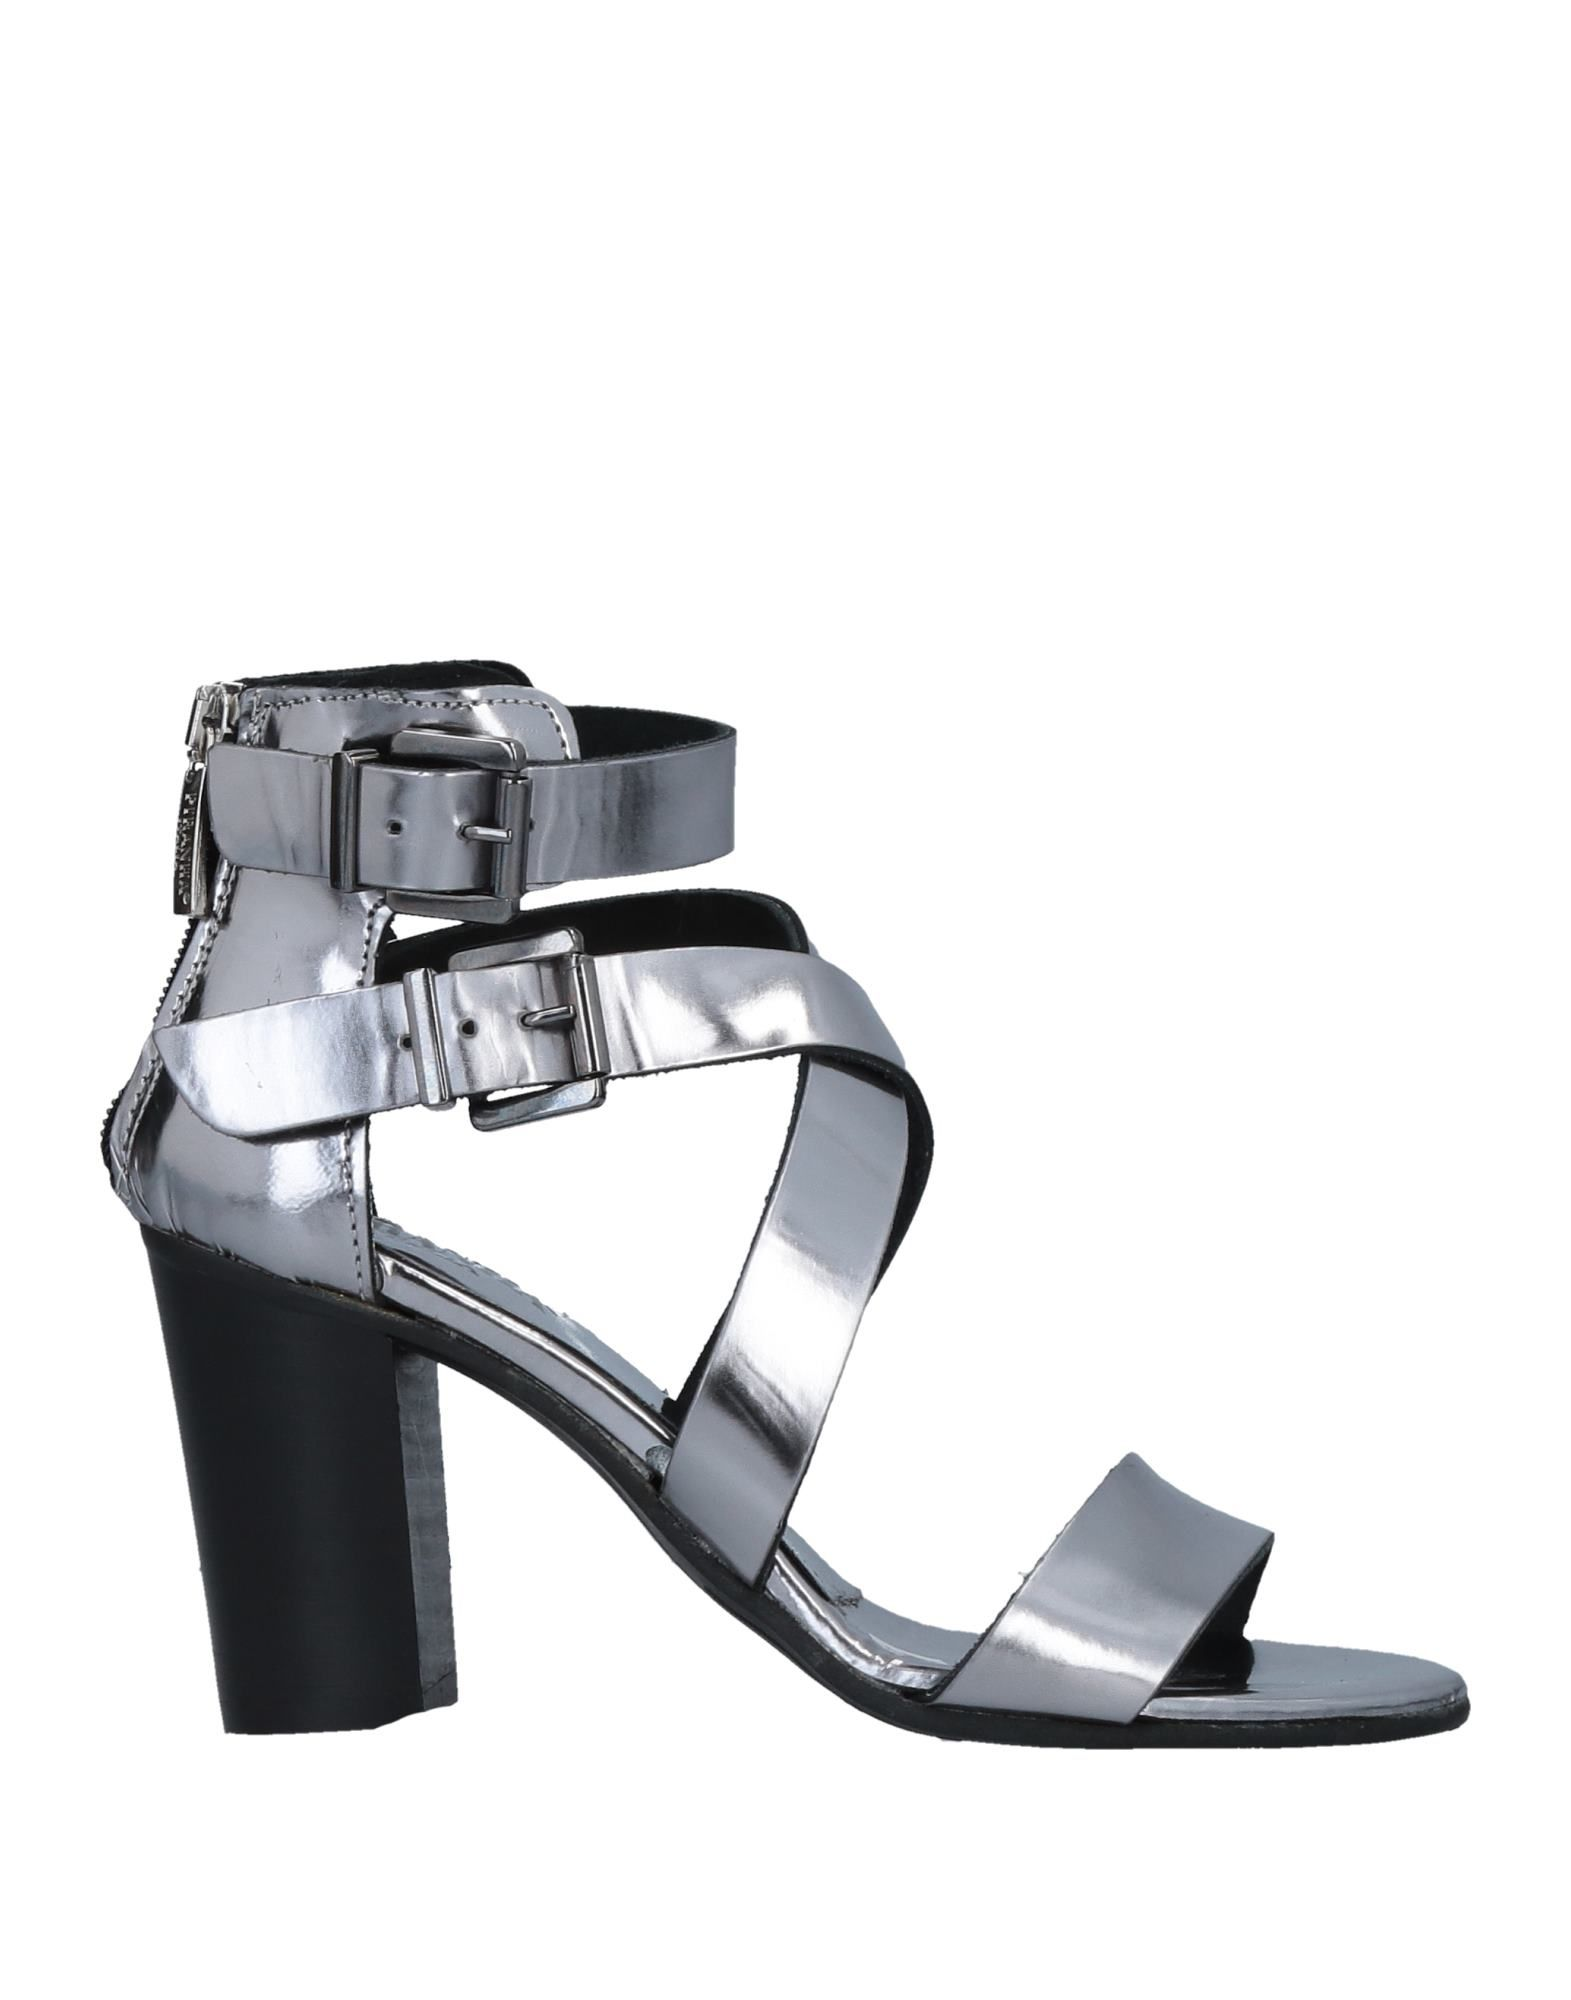 Piranha Sandals Sandals - Women Piranha Sandals Piranha online on  United Kingdom - 11506358SE e28660